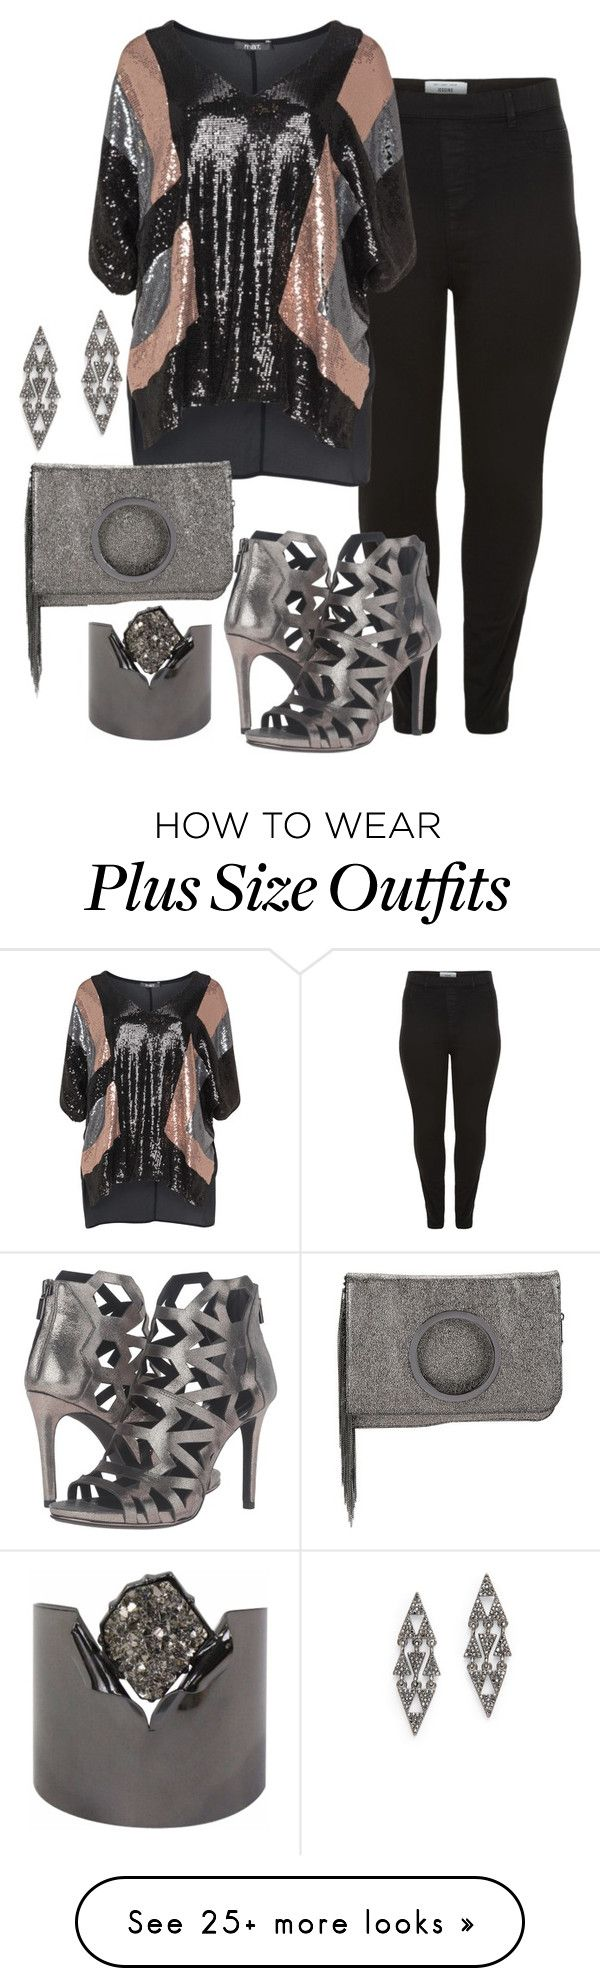 """Untitled #1468"" by beng-gallo on Polyvore featuring New Look, Mat, Kenneth Cole, Halston Heritage, BCBGeneration and Slate & Willow"